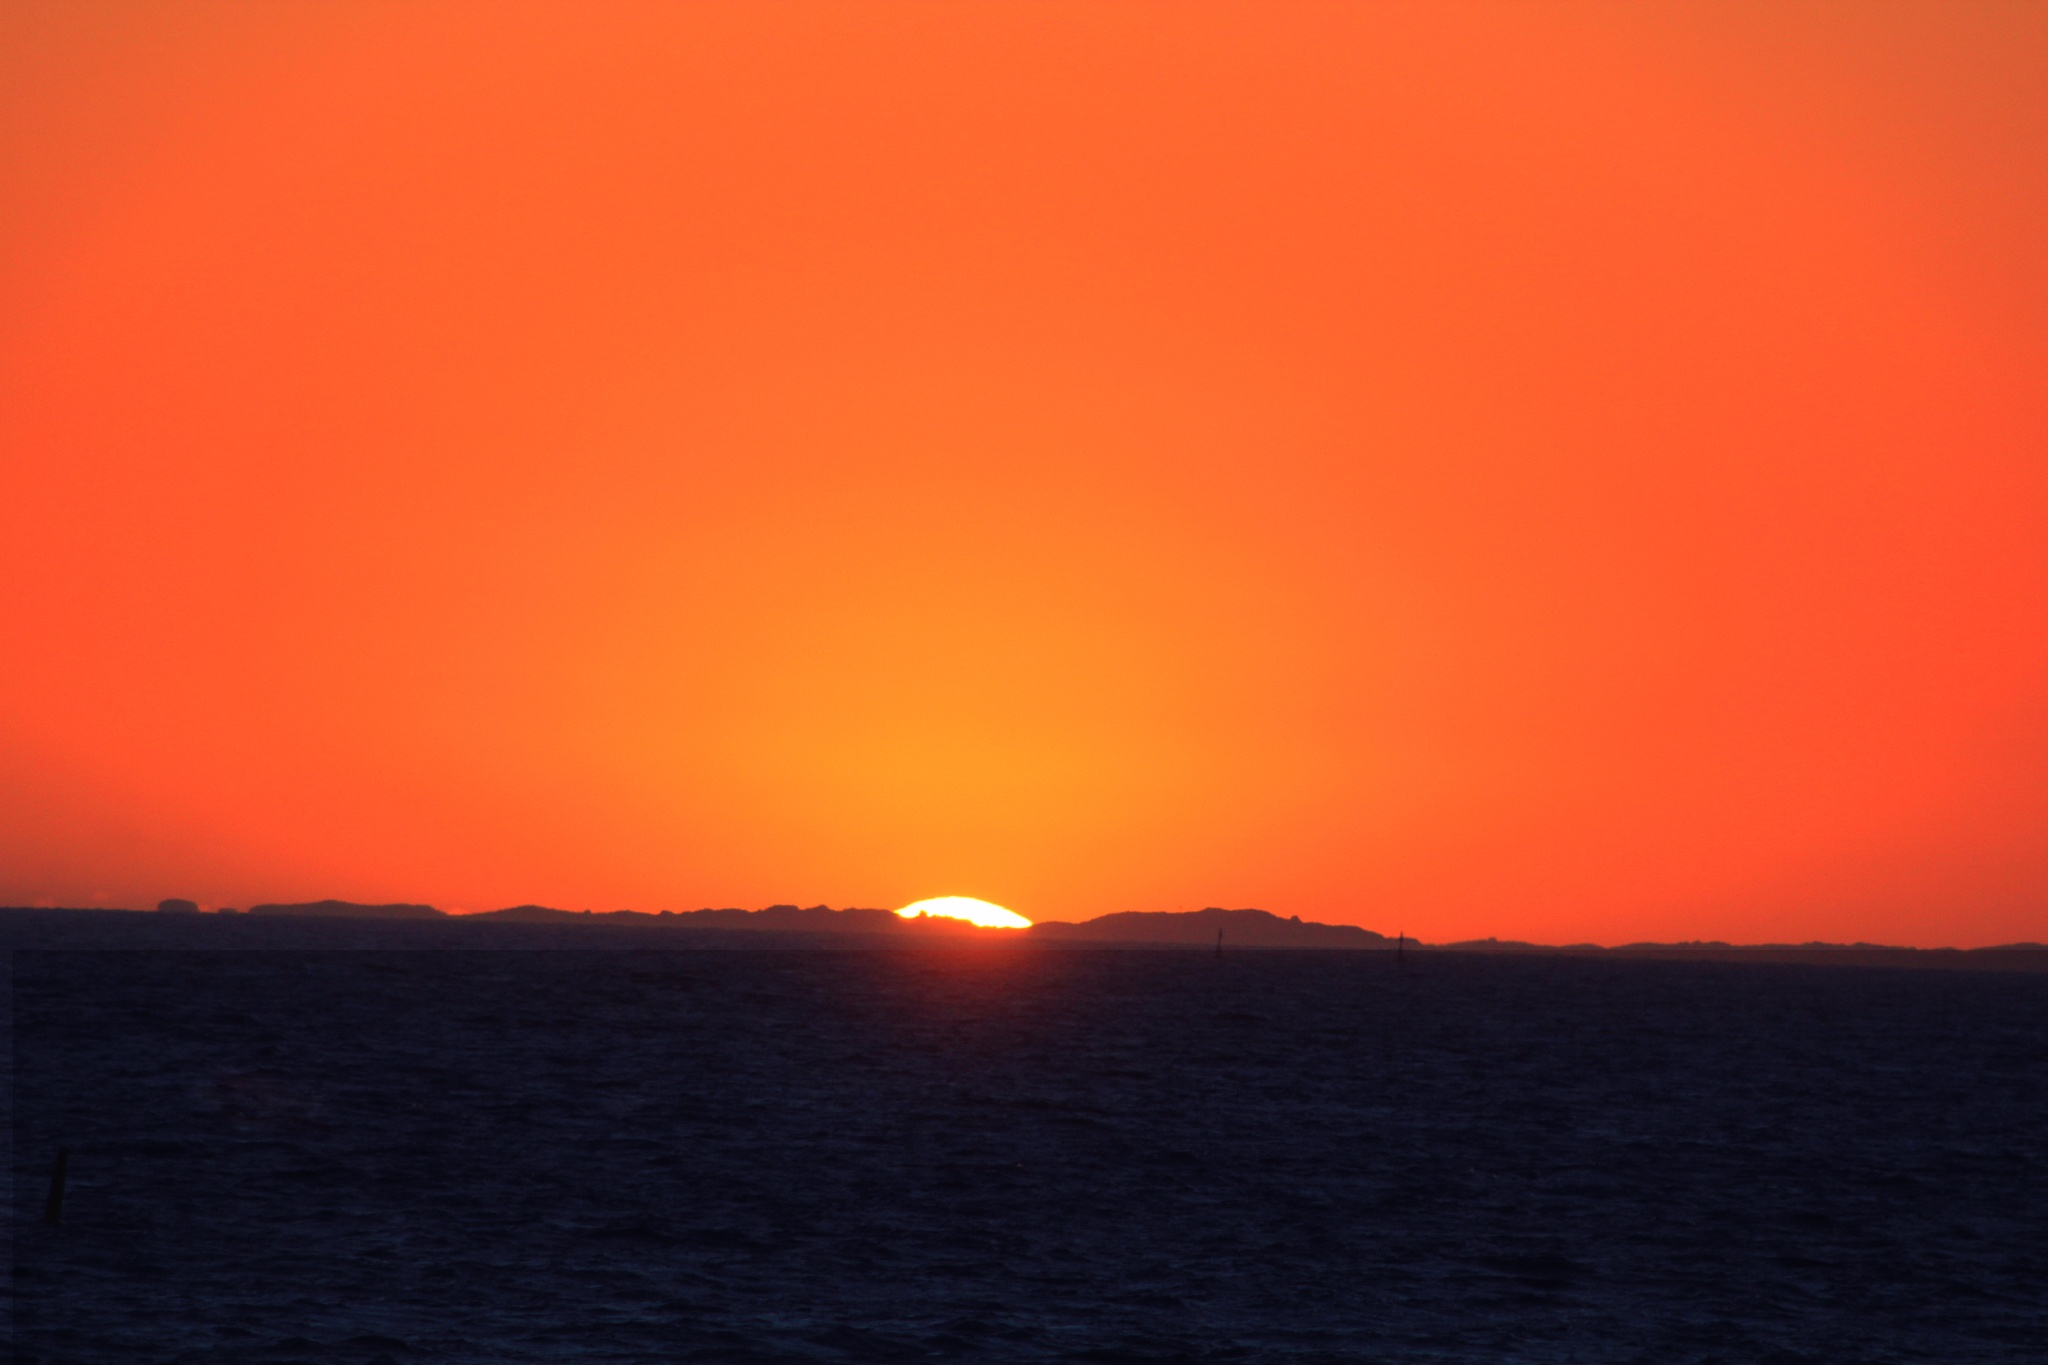 Sun setting in the Indian Ocean by LyndaRealmshift